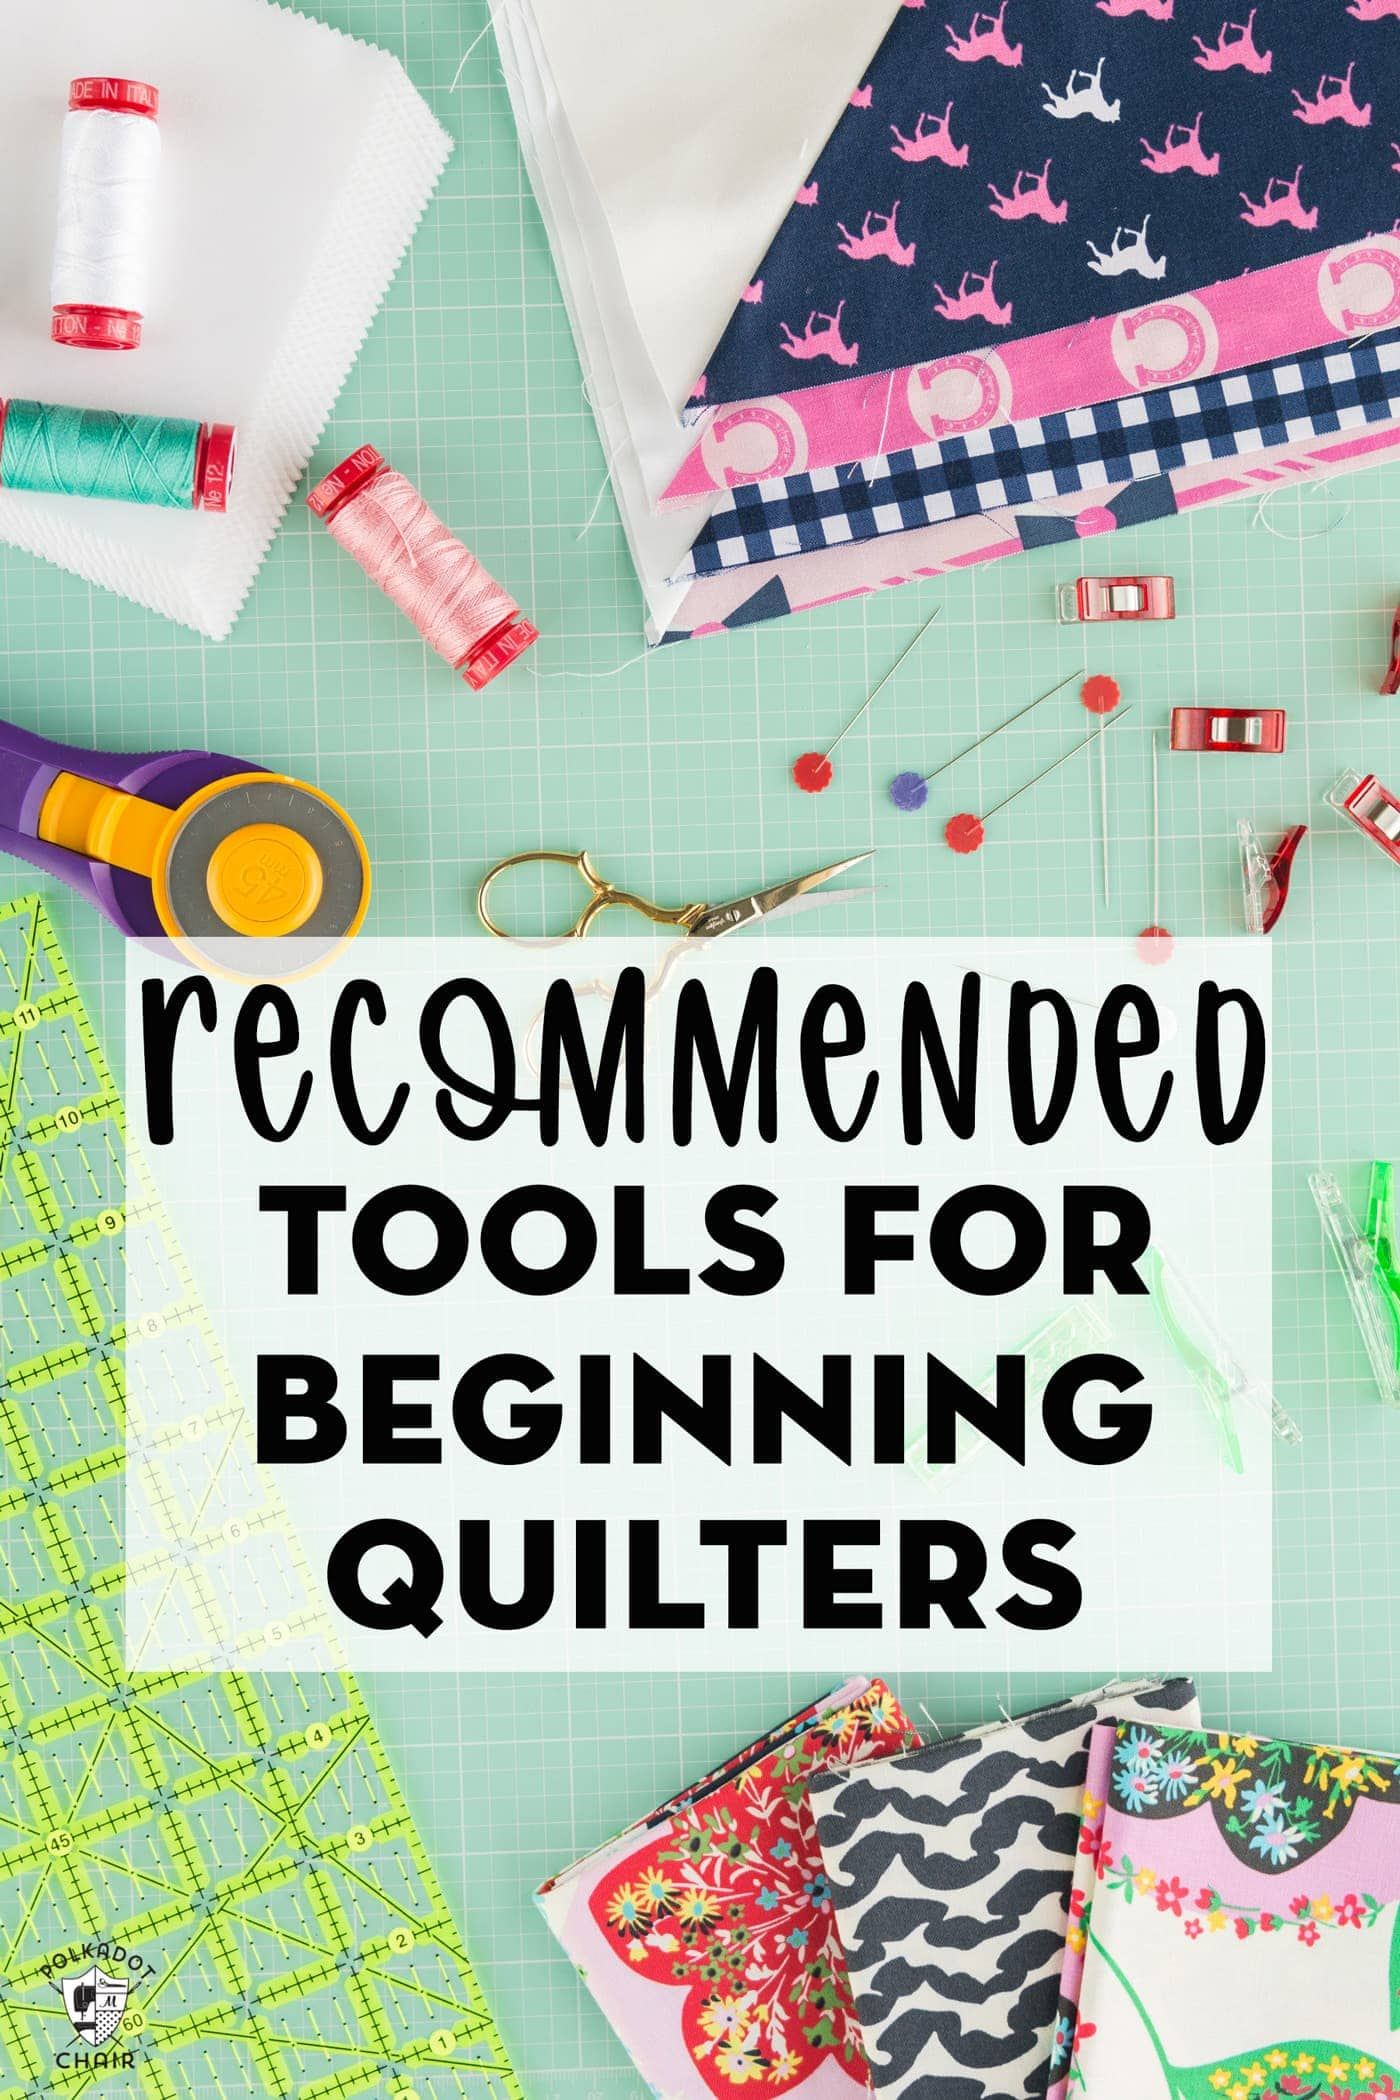 Quilting For Beginners Recommended Supplies The Polka Dot Chair